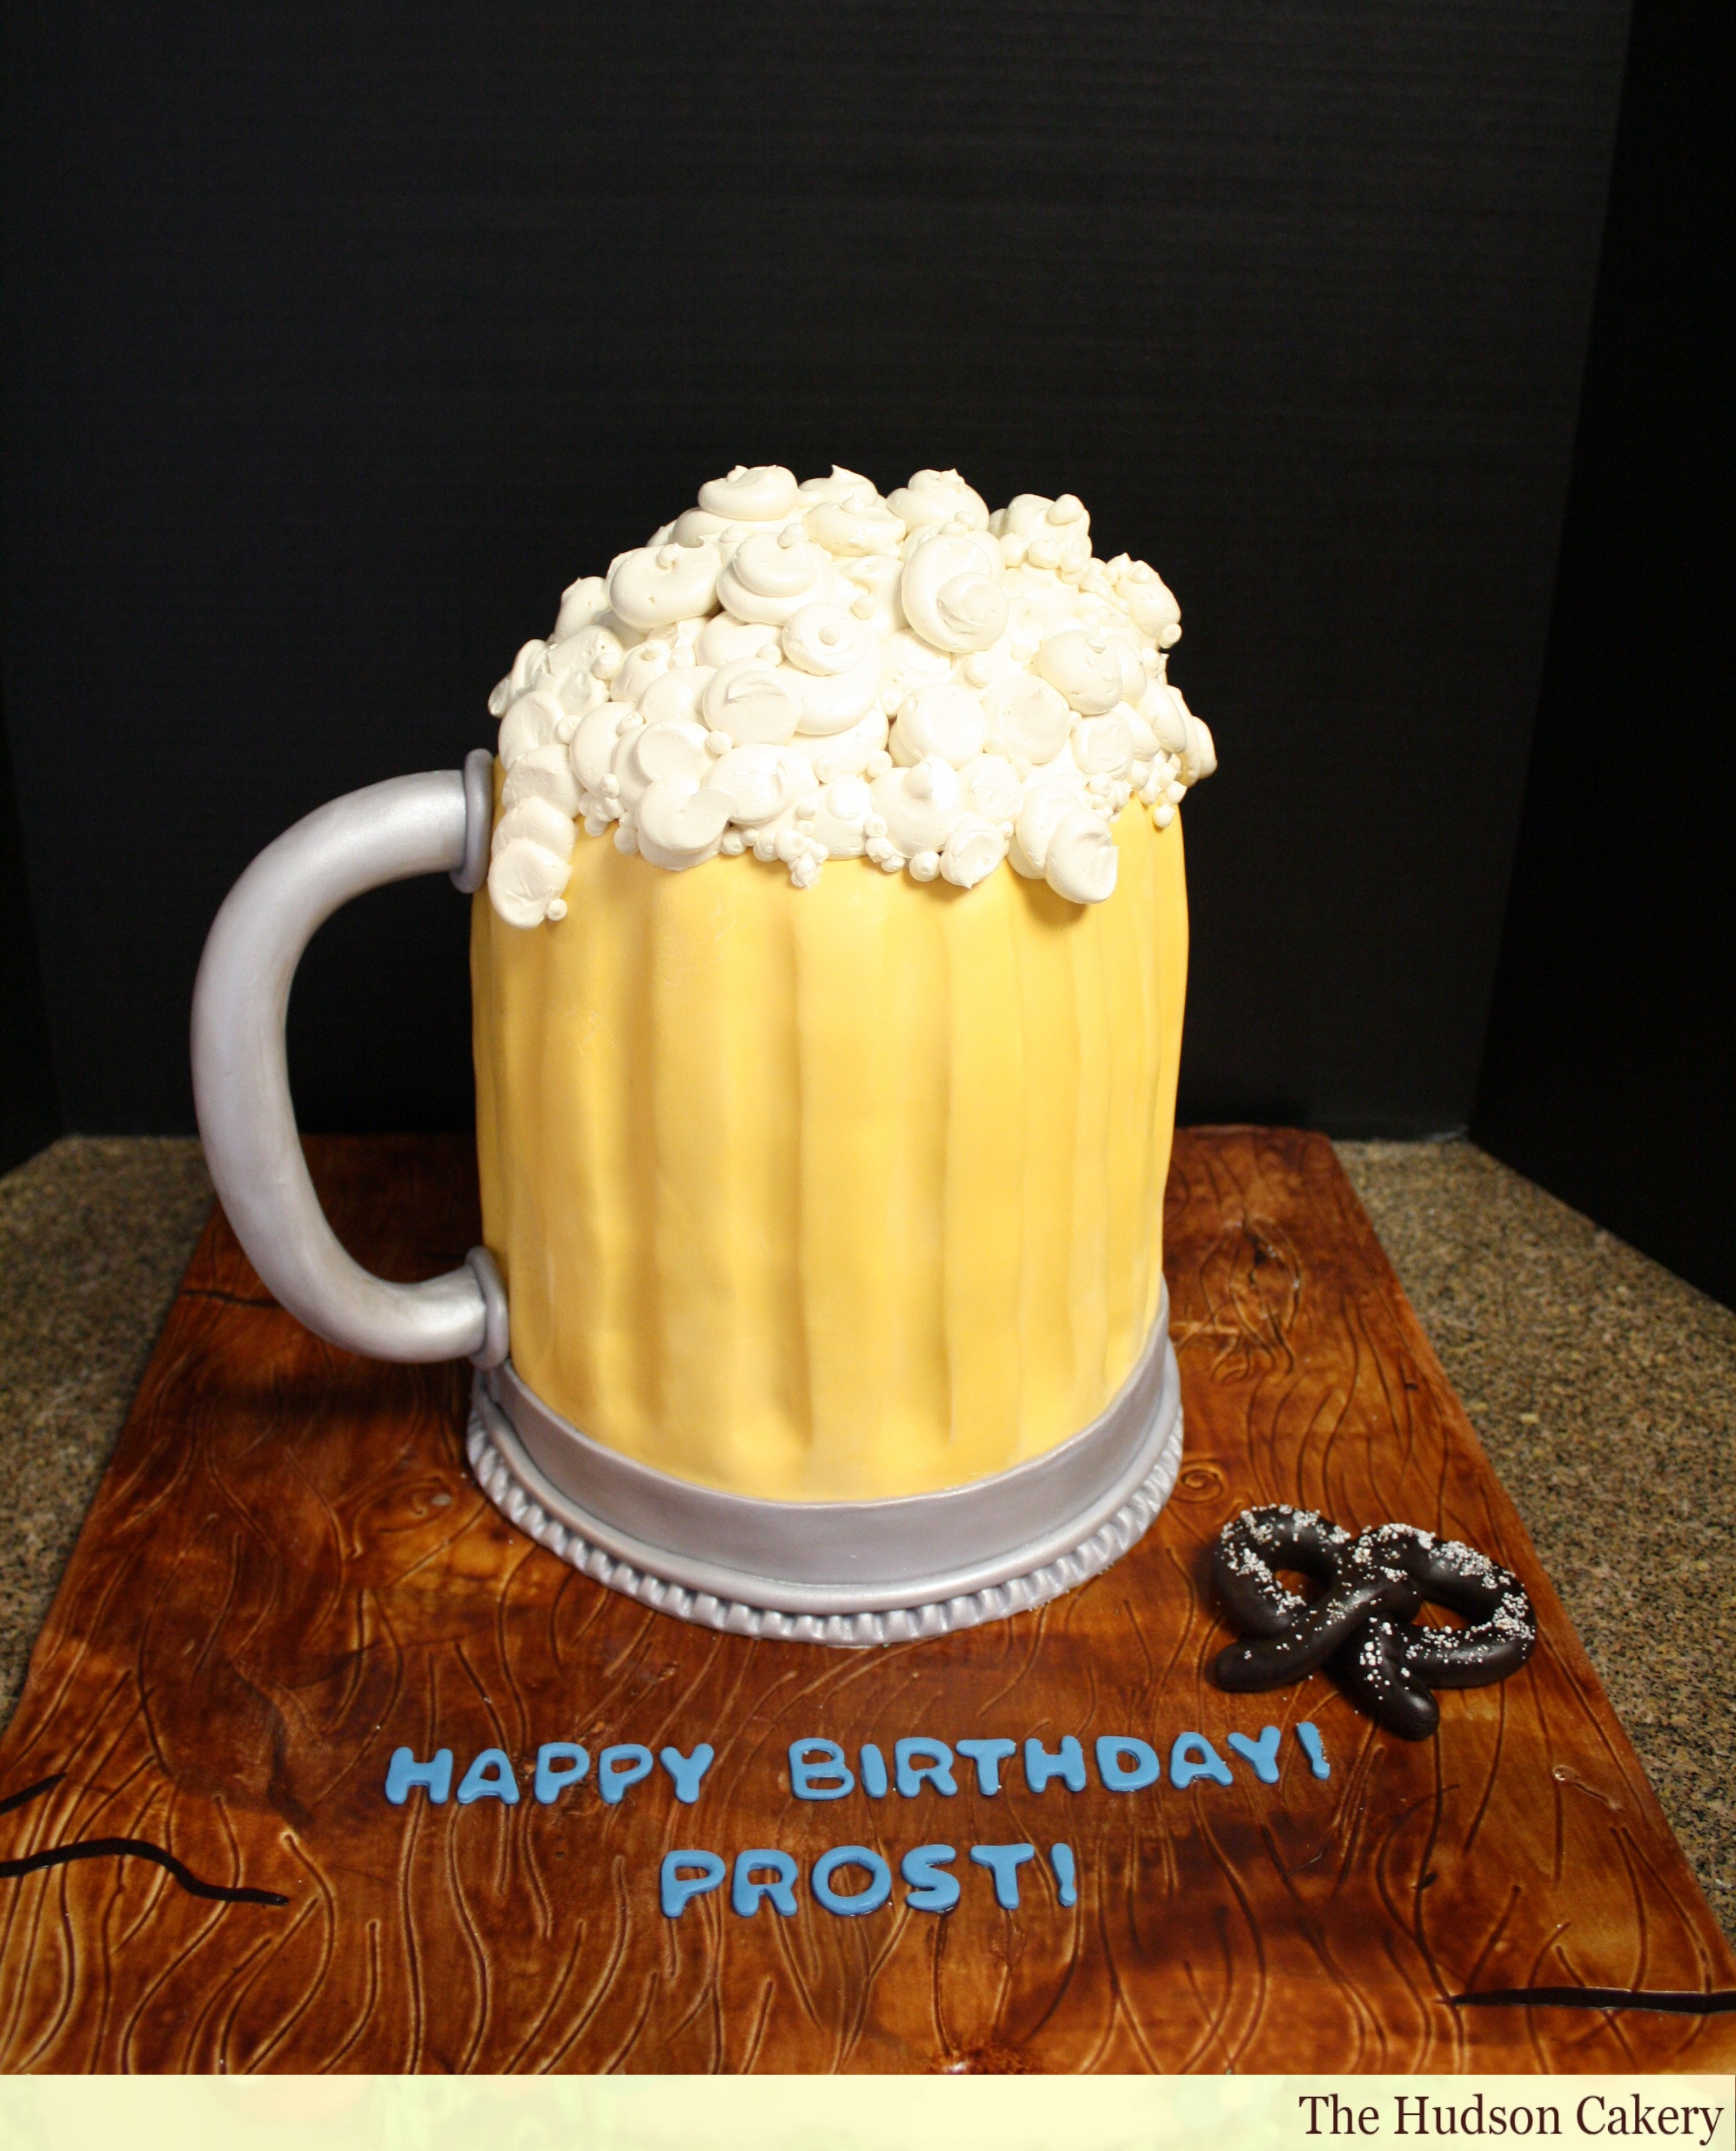 Best ideas about Birthday Beer Cake . Save or Pin Beer Mug Birthday Cake Now.